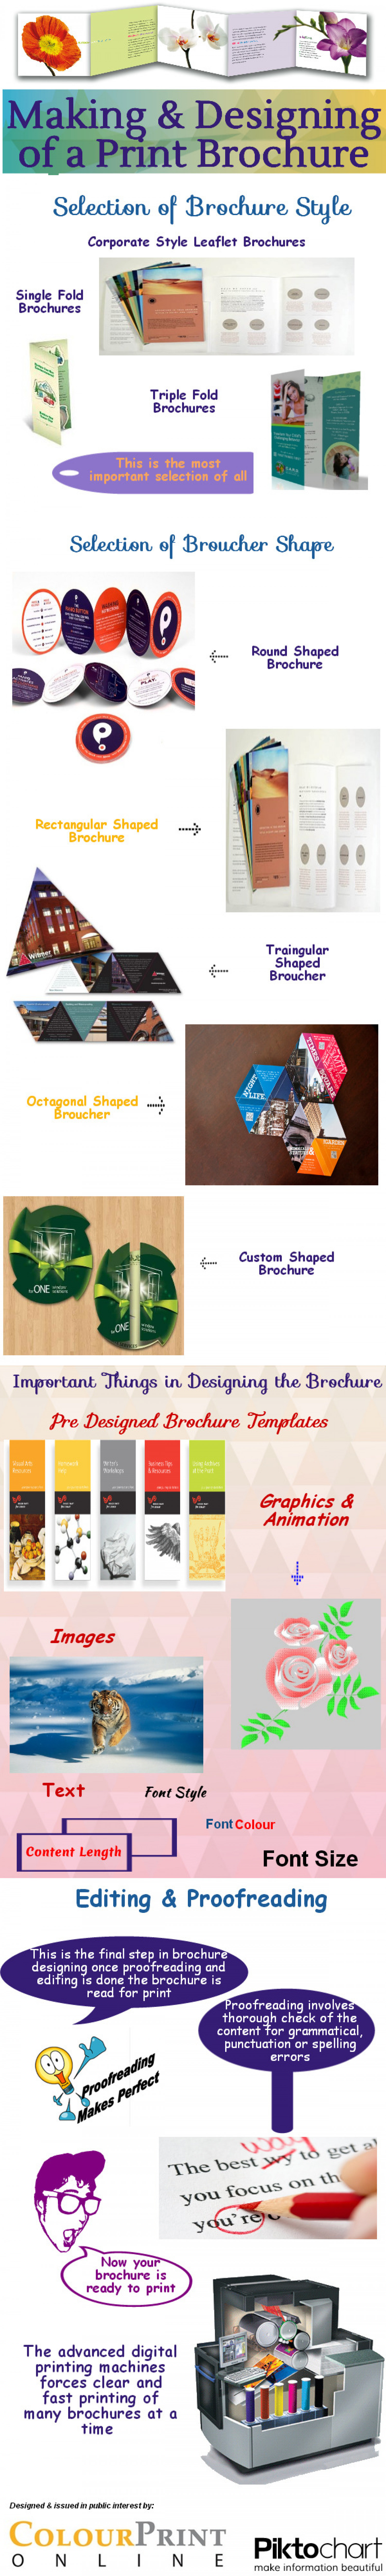 Making & designing of a print brochure Infographic